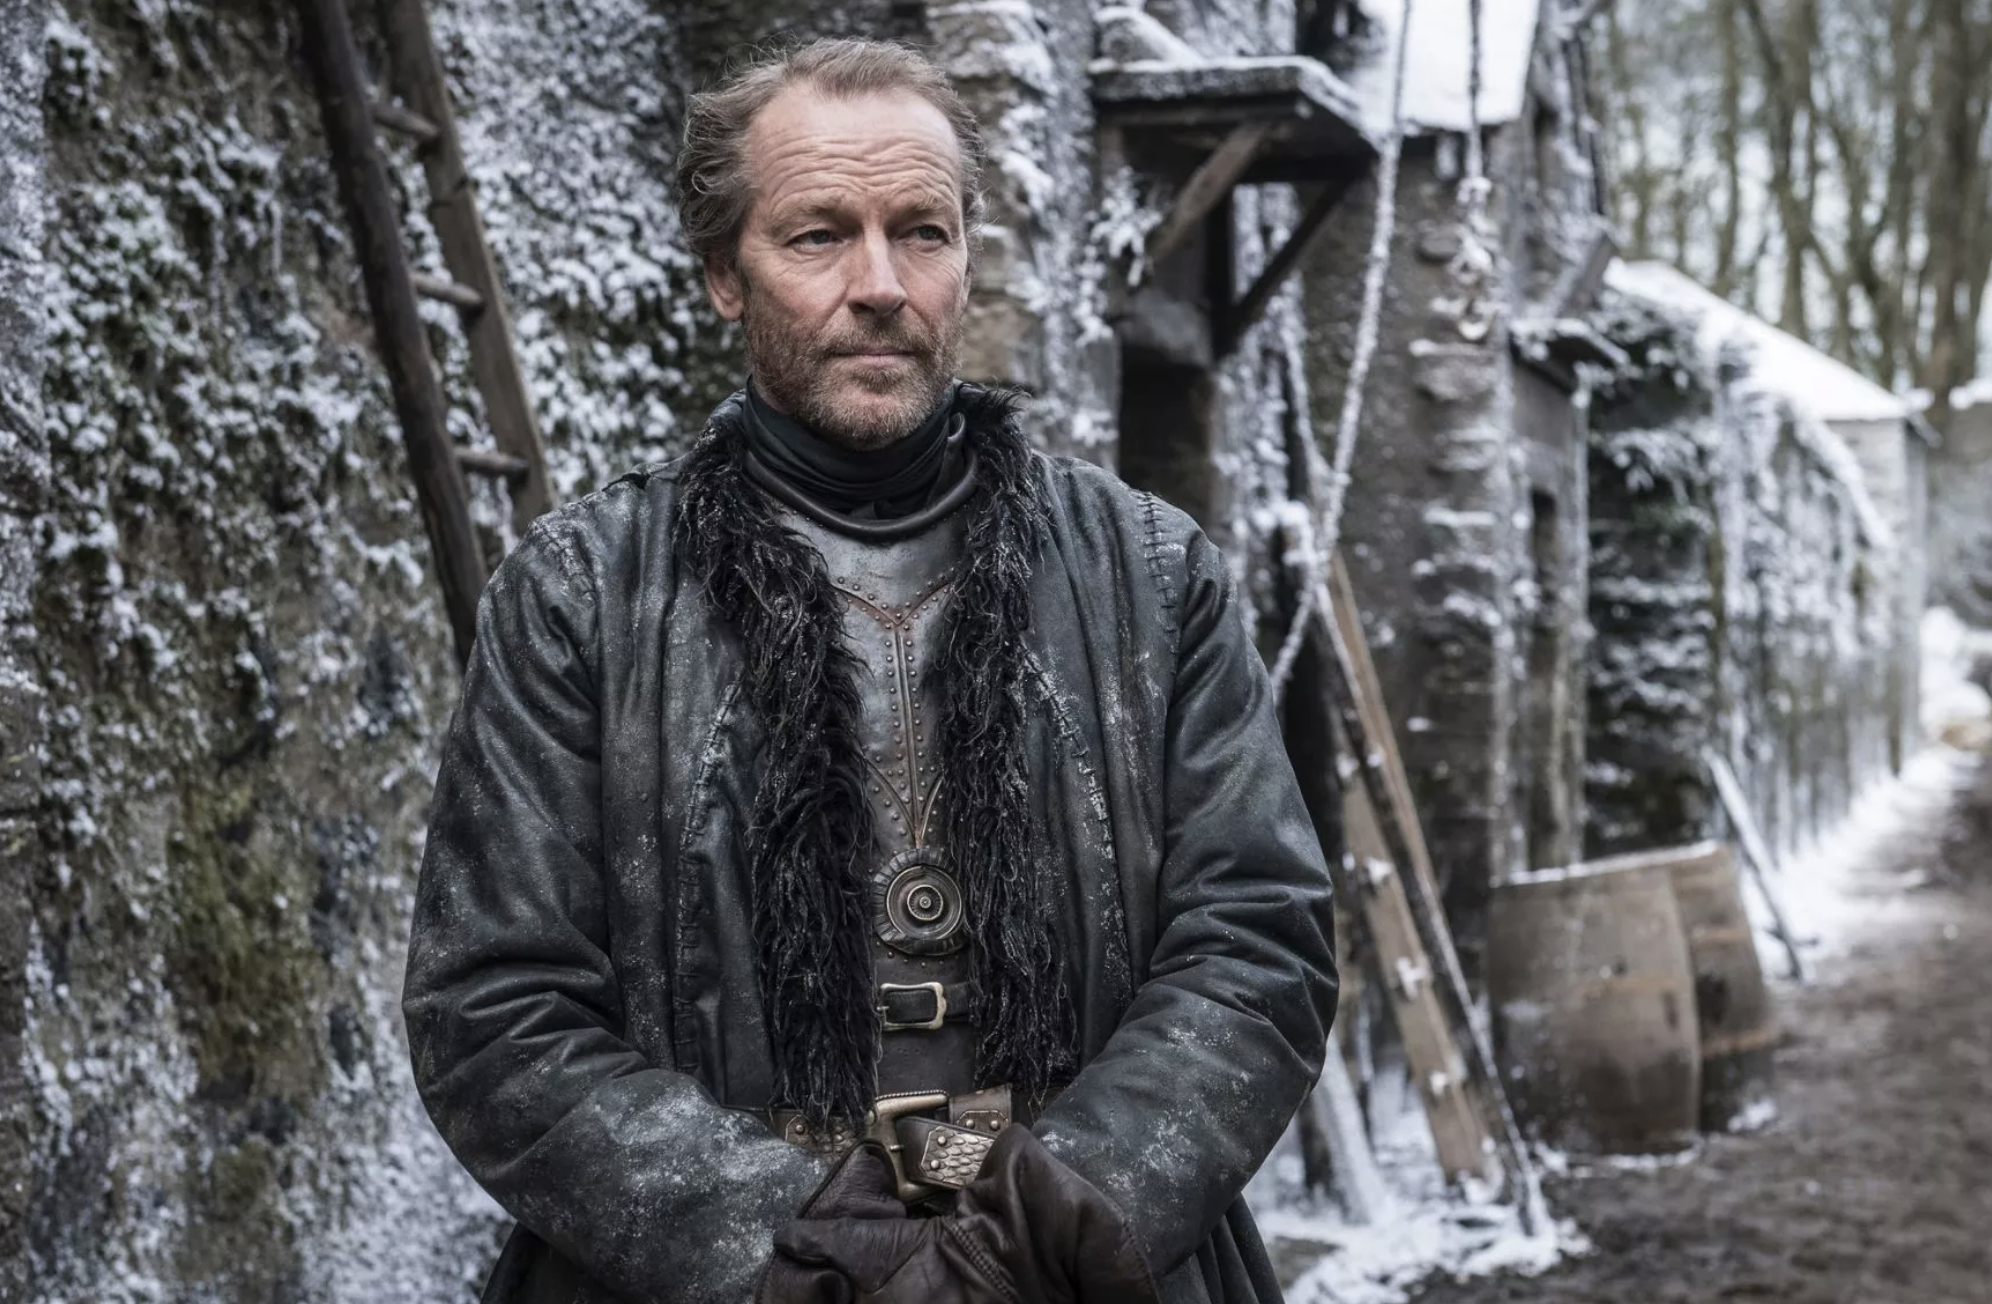 Is Jorah Mormont Actually Azor Ahai? This Fan Theory Explains Why He Might Be the Prince That Was Promised